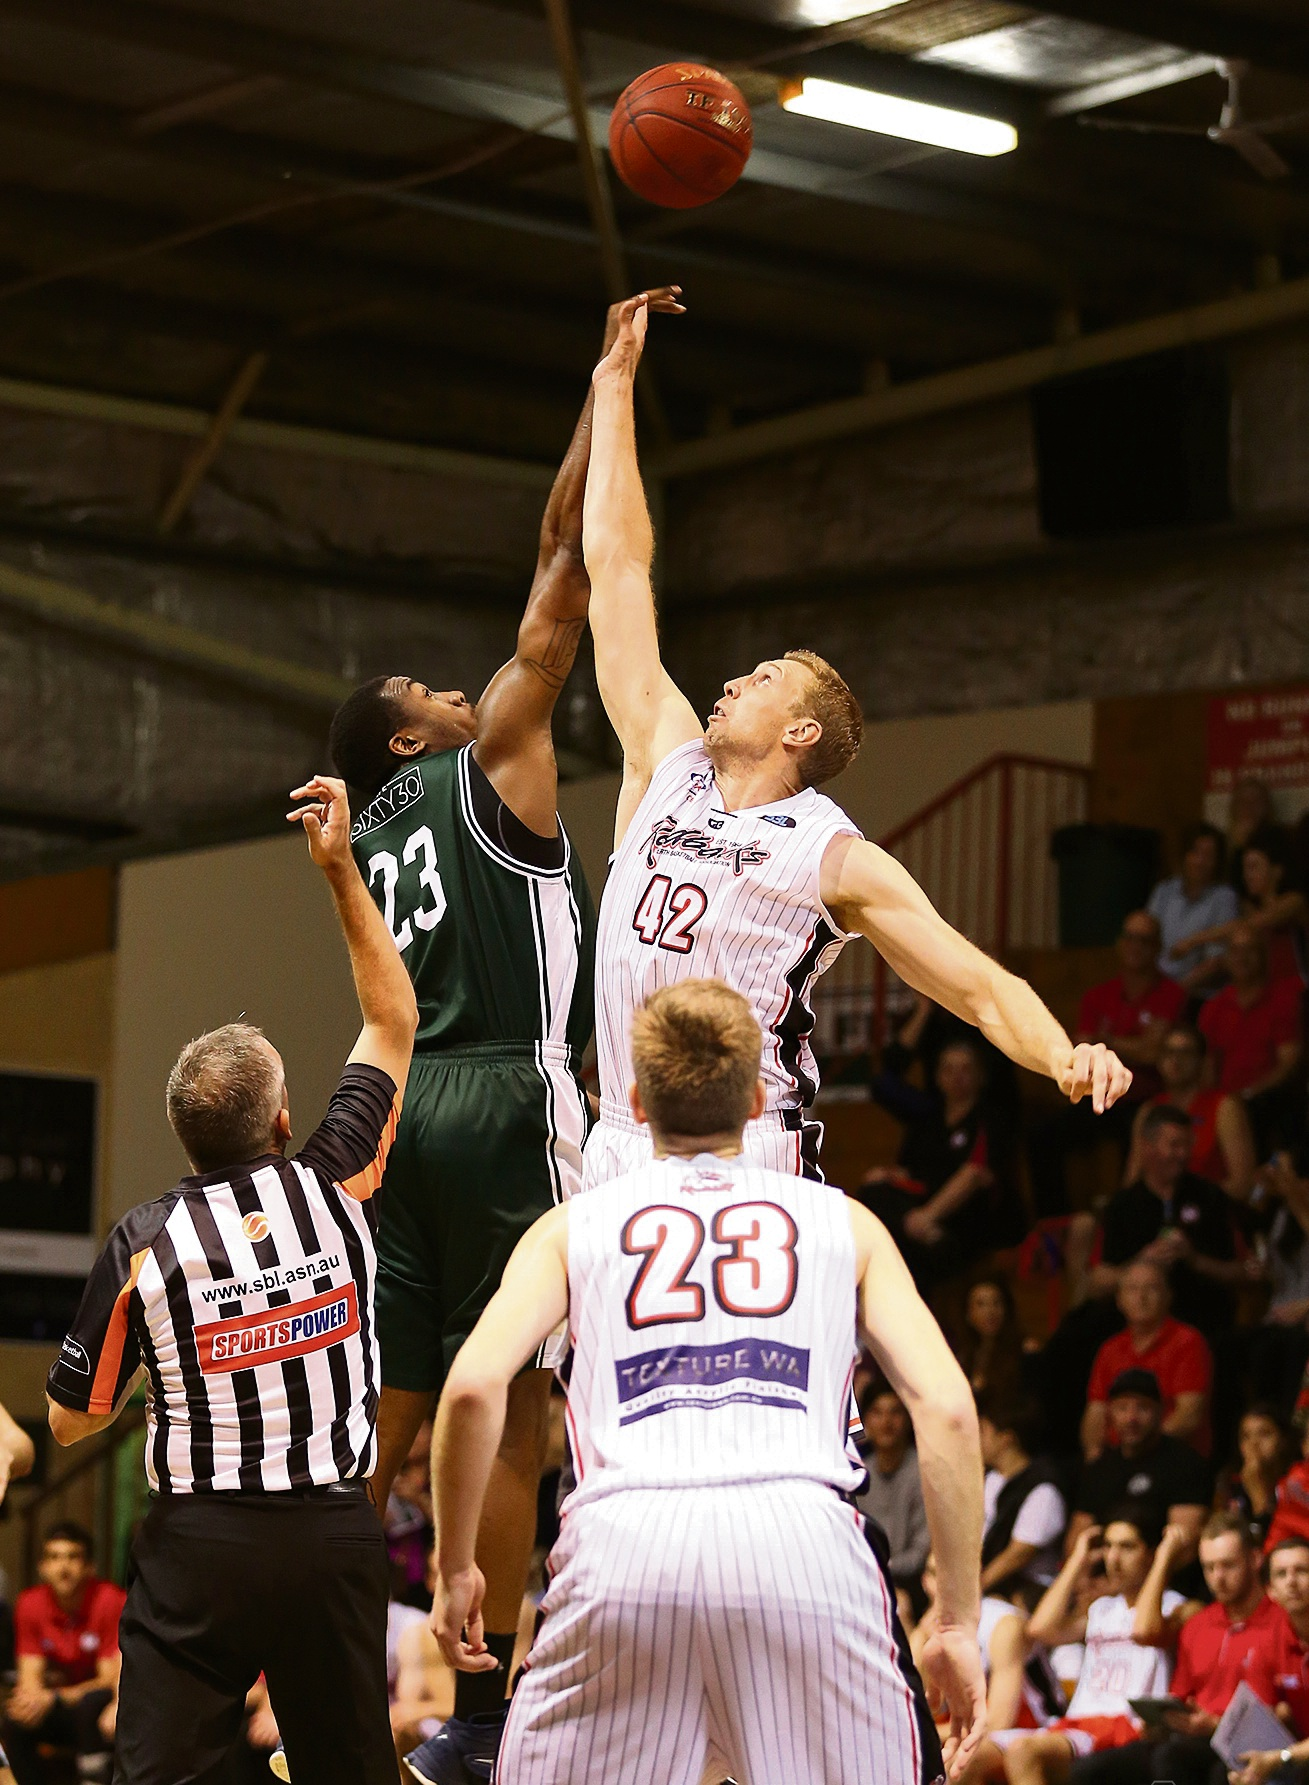 Former Perth Wildcat champion Shawn Redhage has been key to Perth Redbacks fortunes. Picture: Michael Farnell/sportsimagery.com.au